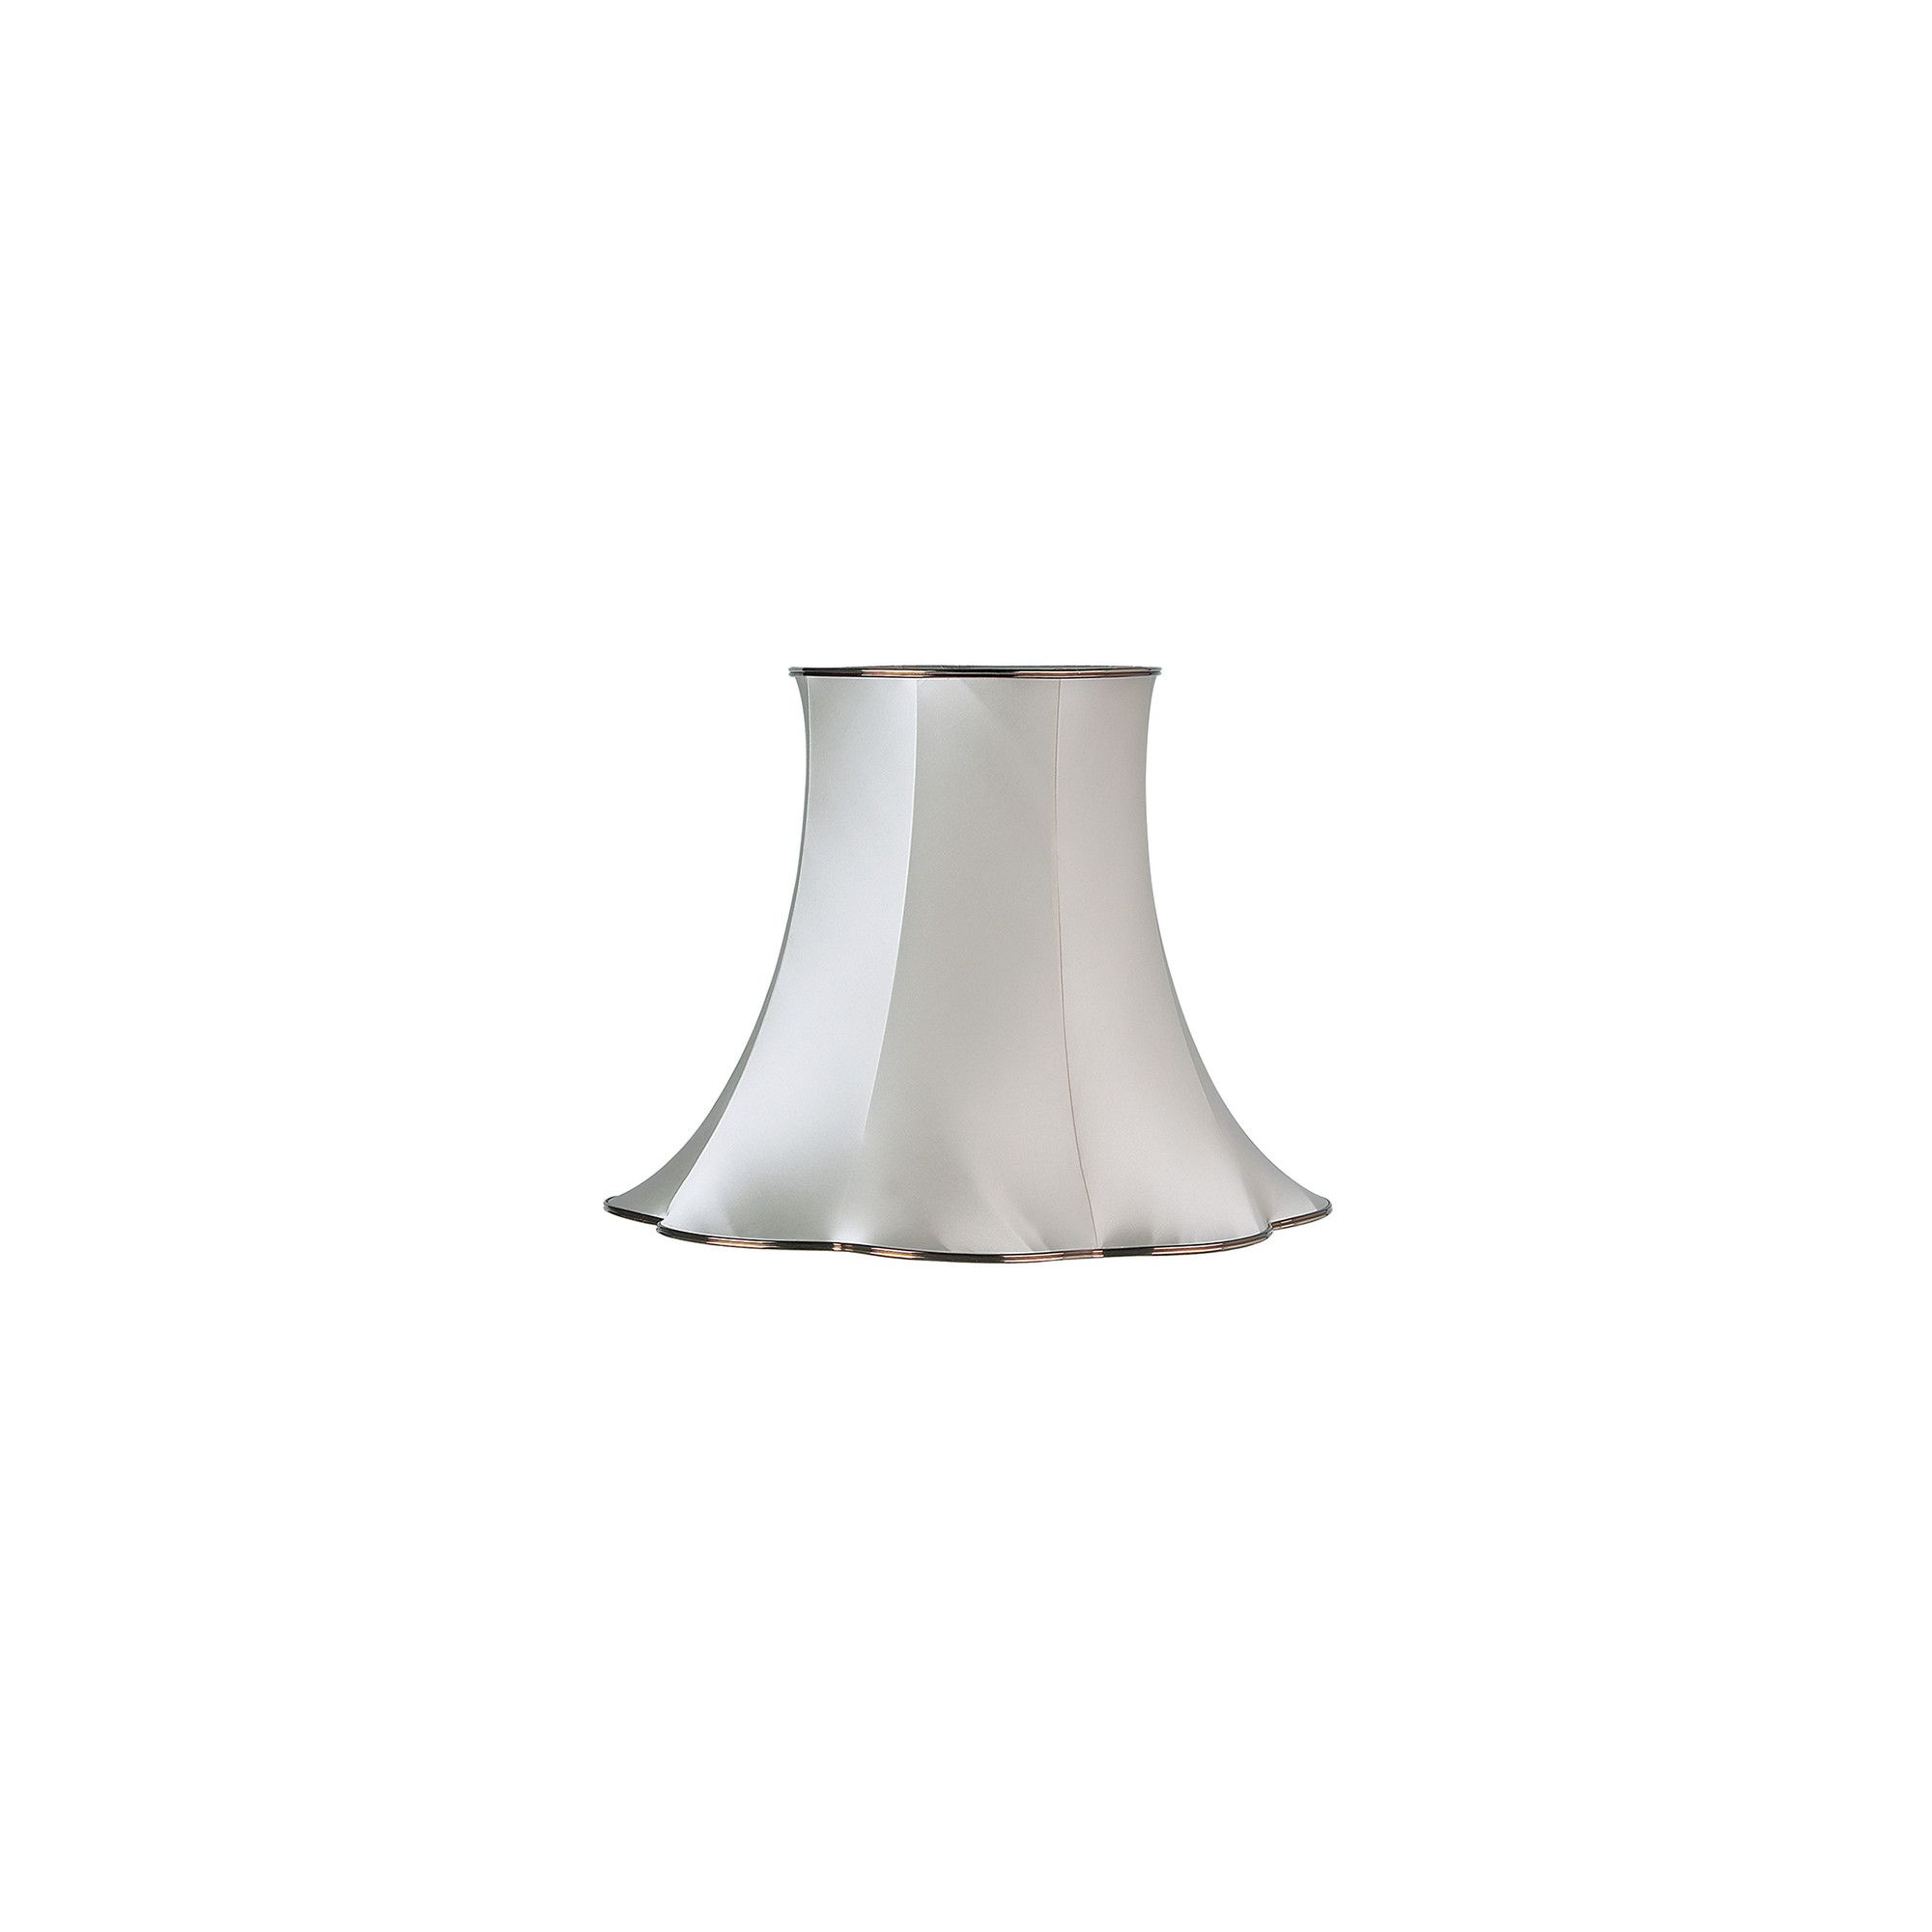 Endon Lighting Daisy Shade in Oyster Satin Fabric 43 x 56